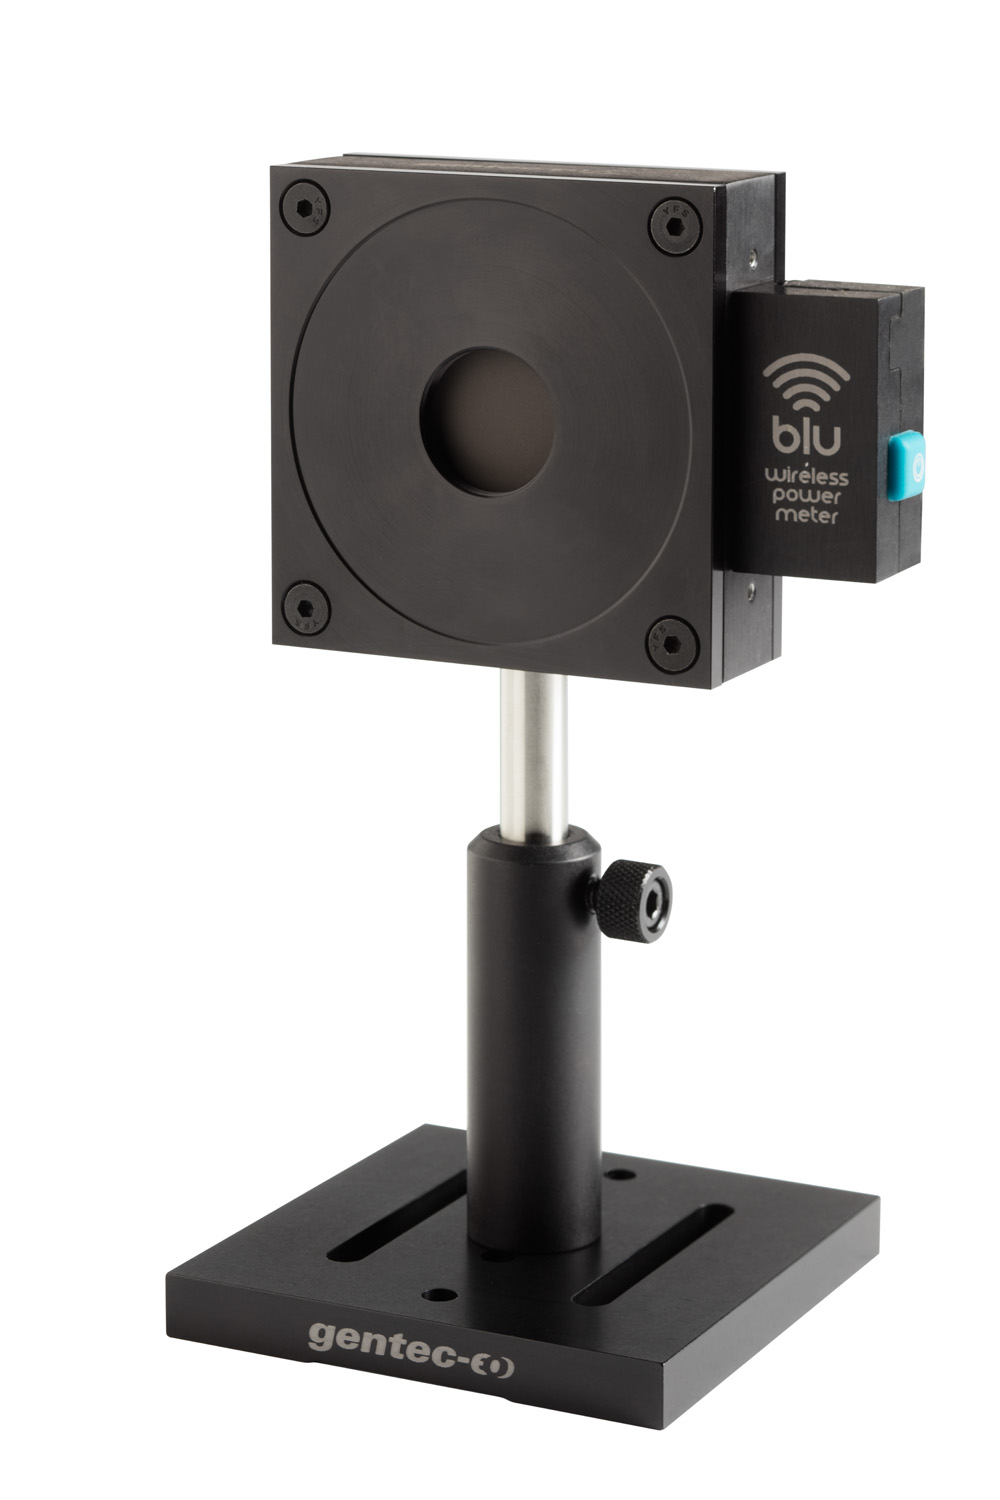 Gentec-EO announce Blu, the Bluetooth connected All-in-One detector & meter